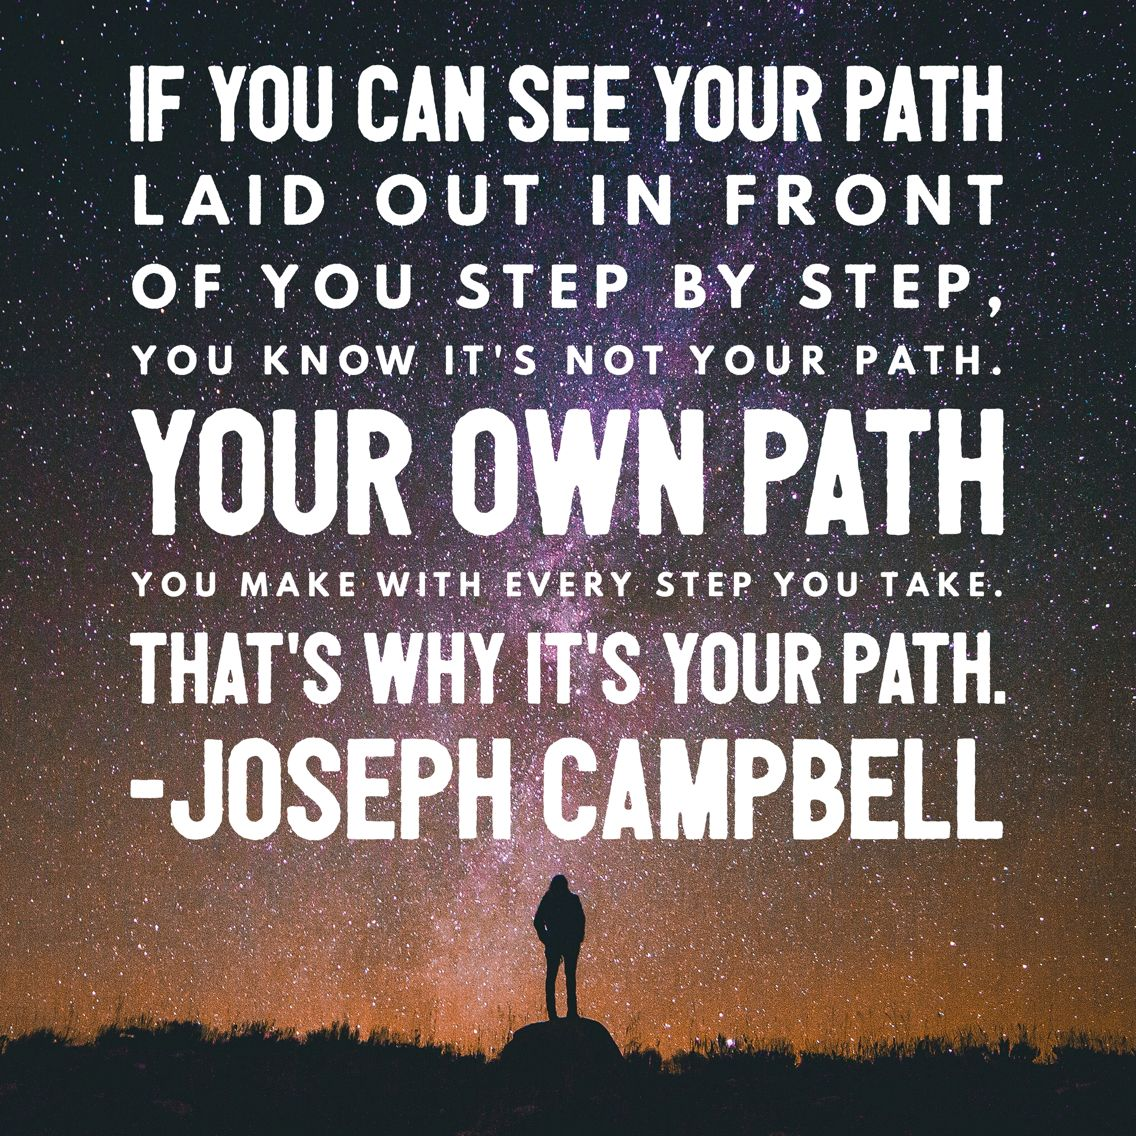 Quote Qqq: Reading A Book And Loving This Joseph Campbell #quote. If